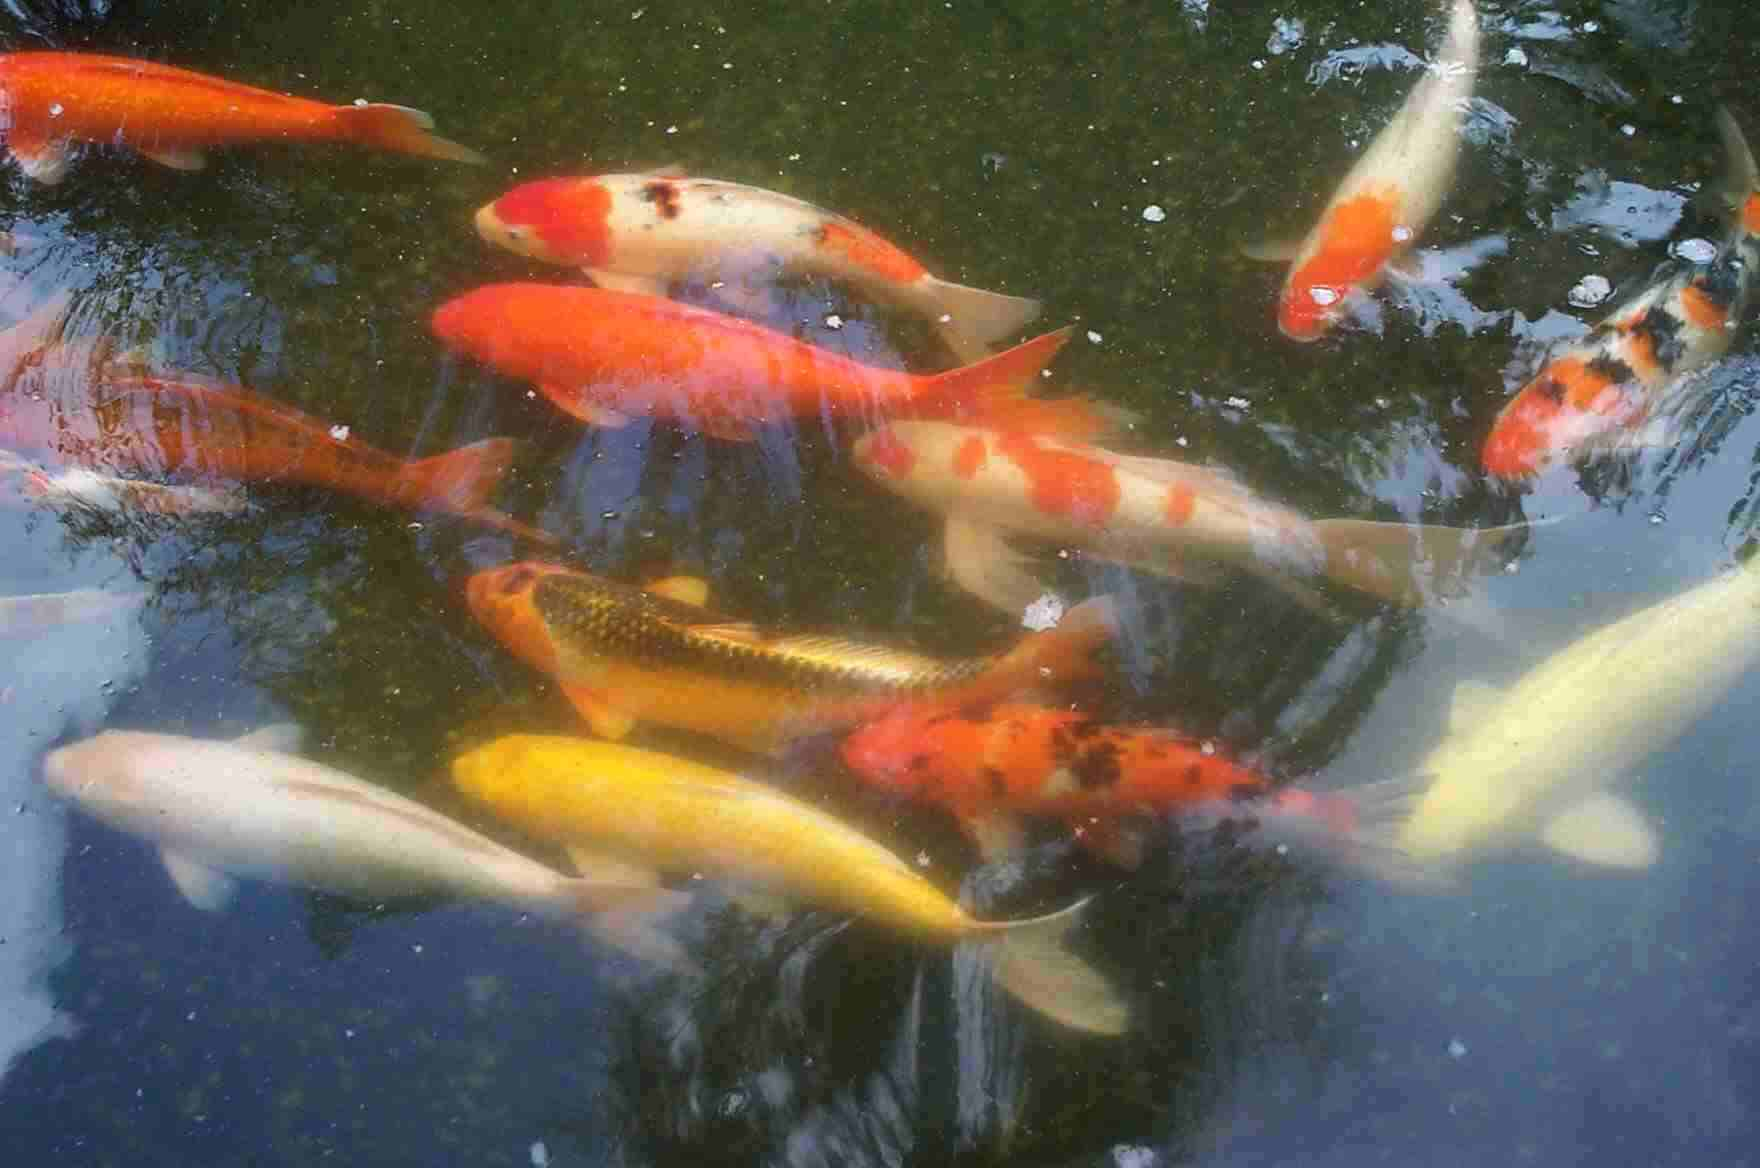 Discus fish for sale 8 amazing giant koi fish for sale for Koi carp fish for sale